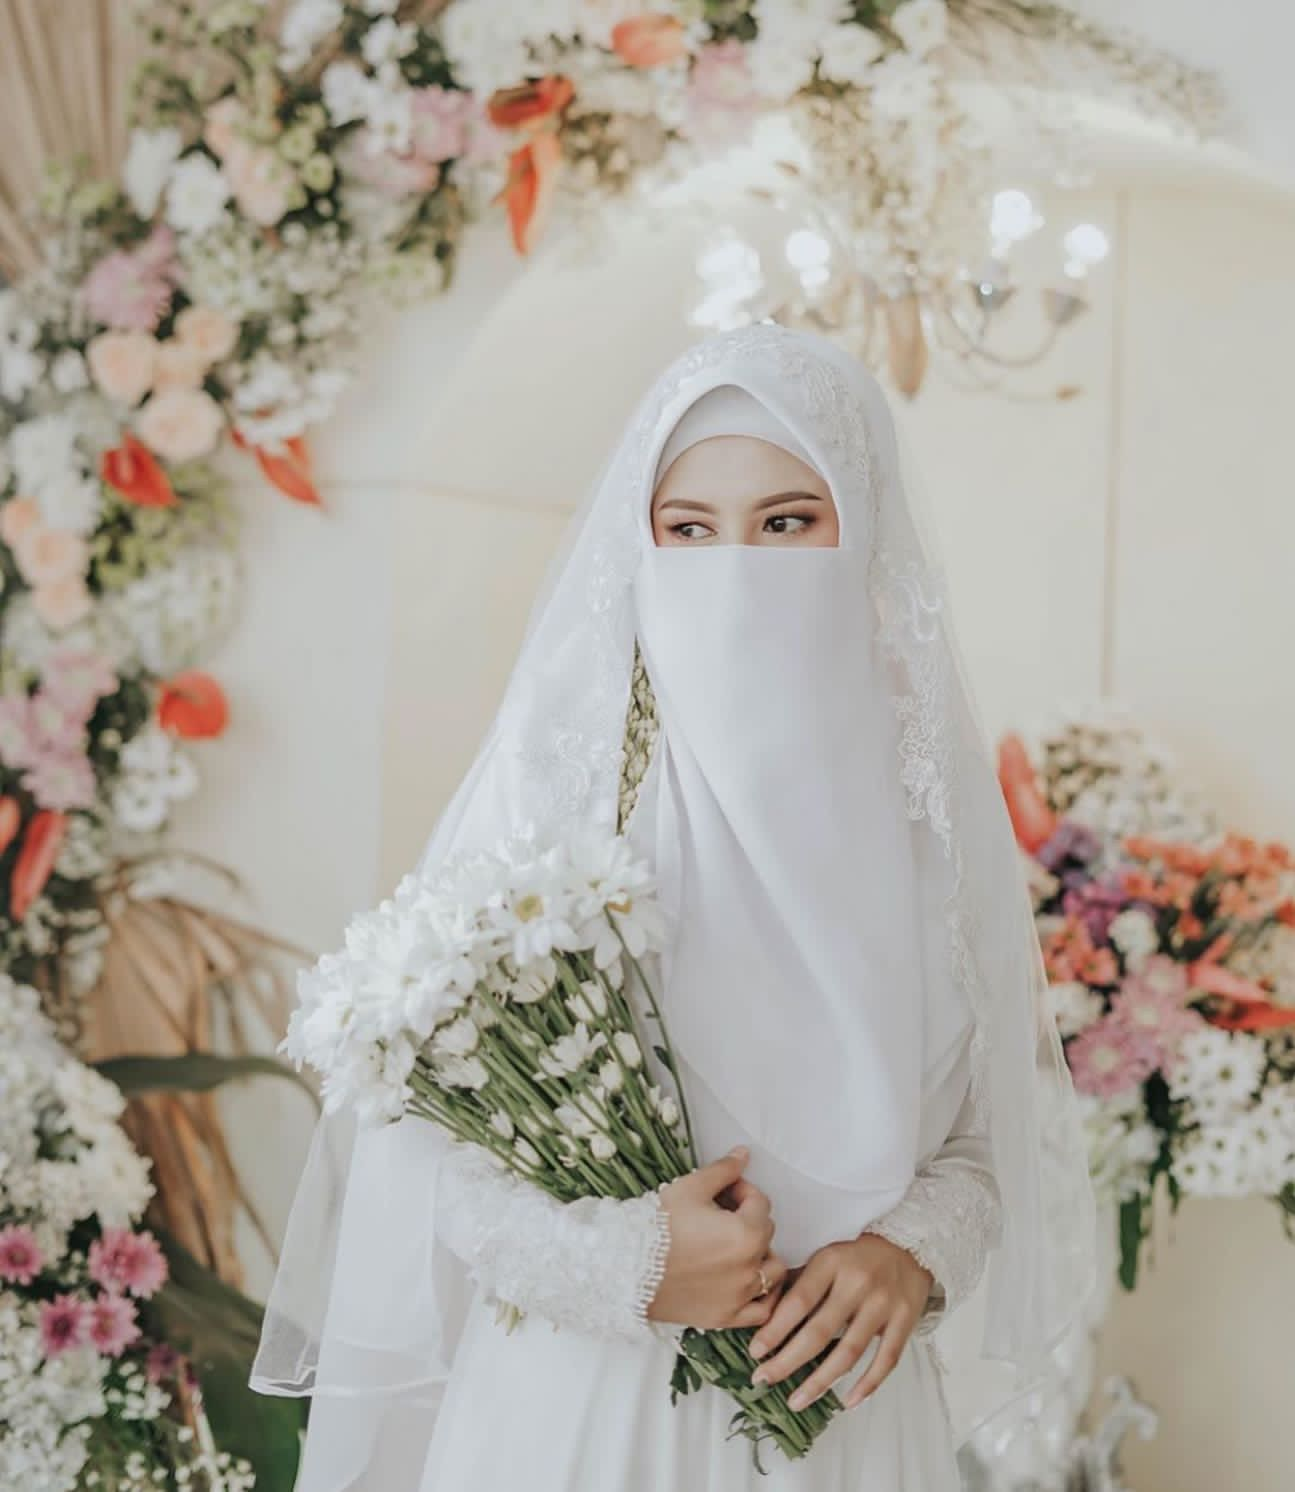 Pin by hajarulazmi on Baju pengantin in 10  Muslimah wedding